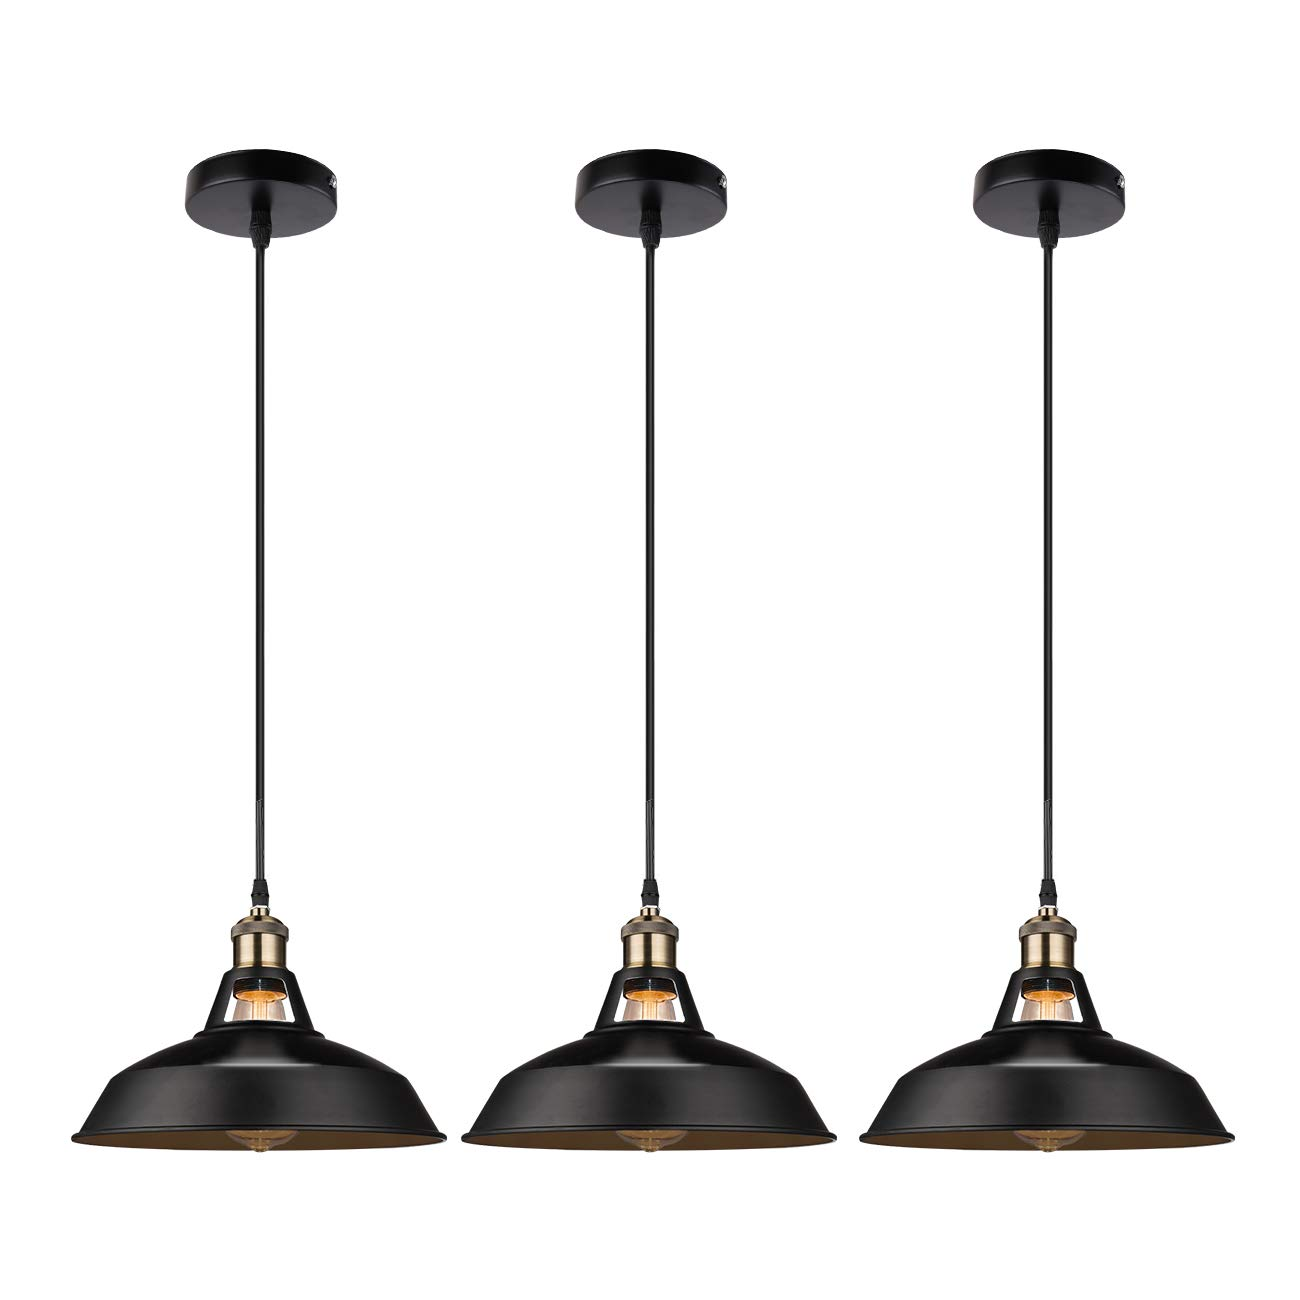 GALYGG Retro Industrial Pendant Lighting Black Ceiling Light Fixtures, Metal Shade Hanging Pendant Lights 10.63 in Diameter, for Kitchen Island (Included 4W E26 Edison Bulb) - 3 Pack